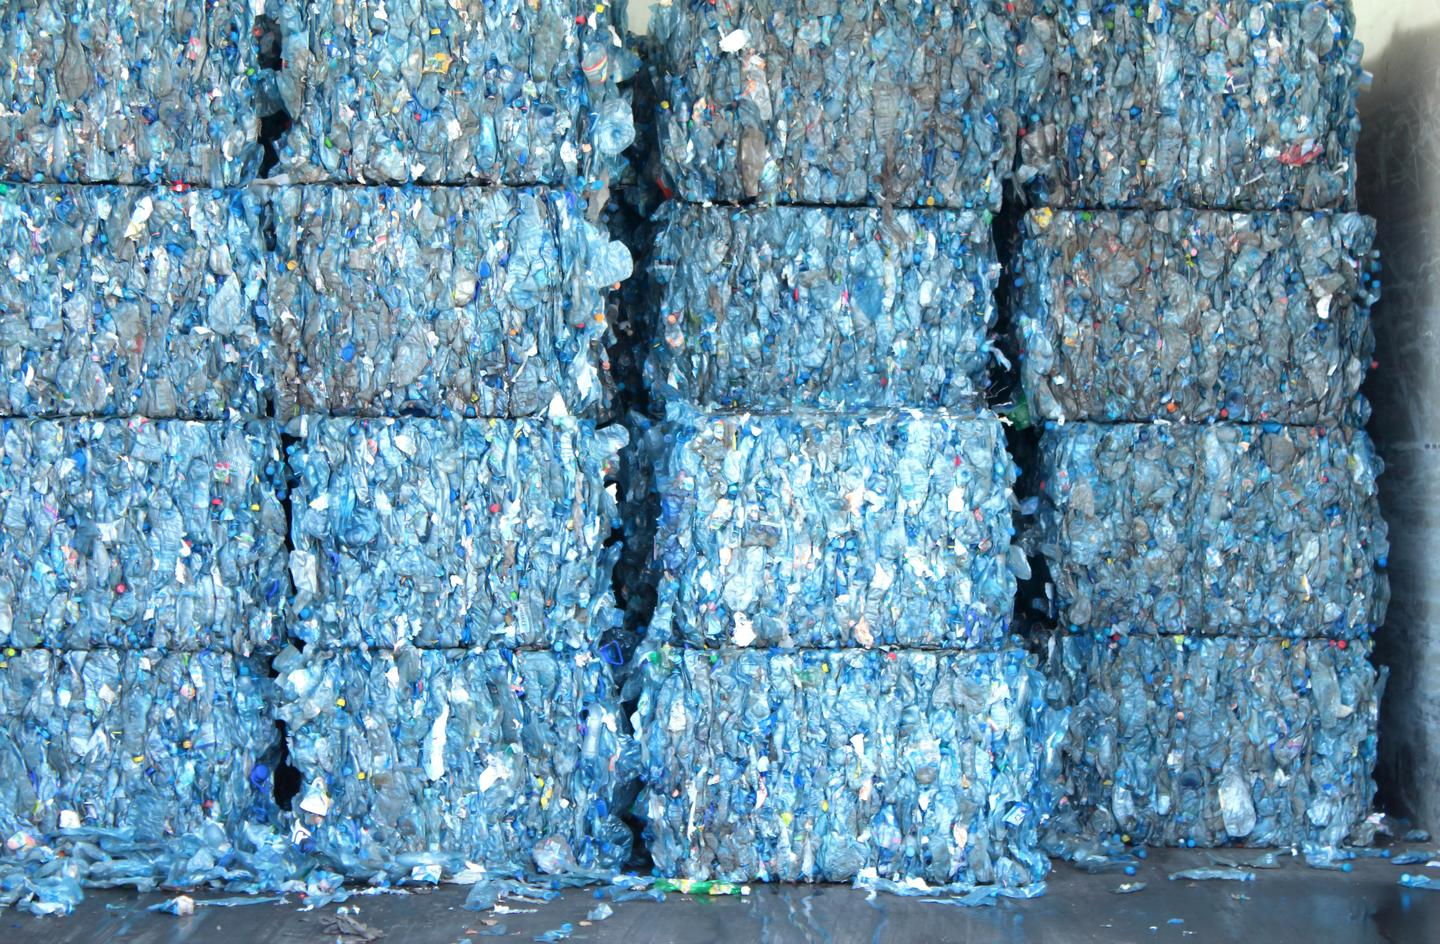 One ton of mineral paper can be created from 235 kg of pellets or PET beads